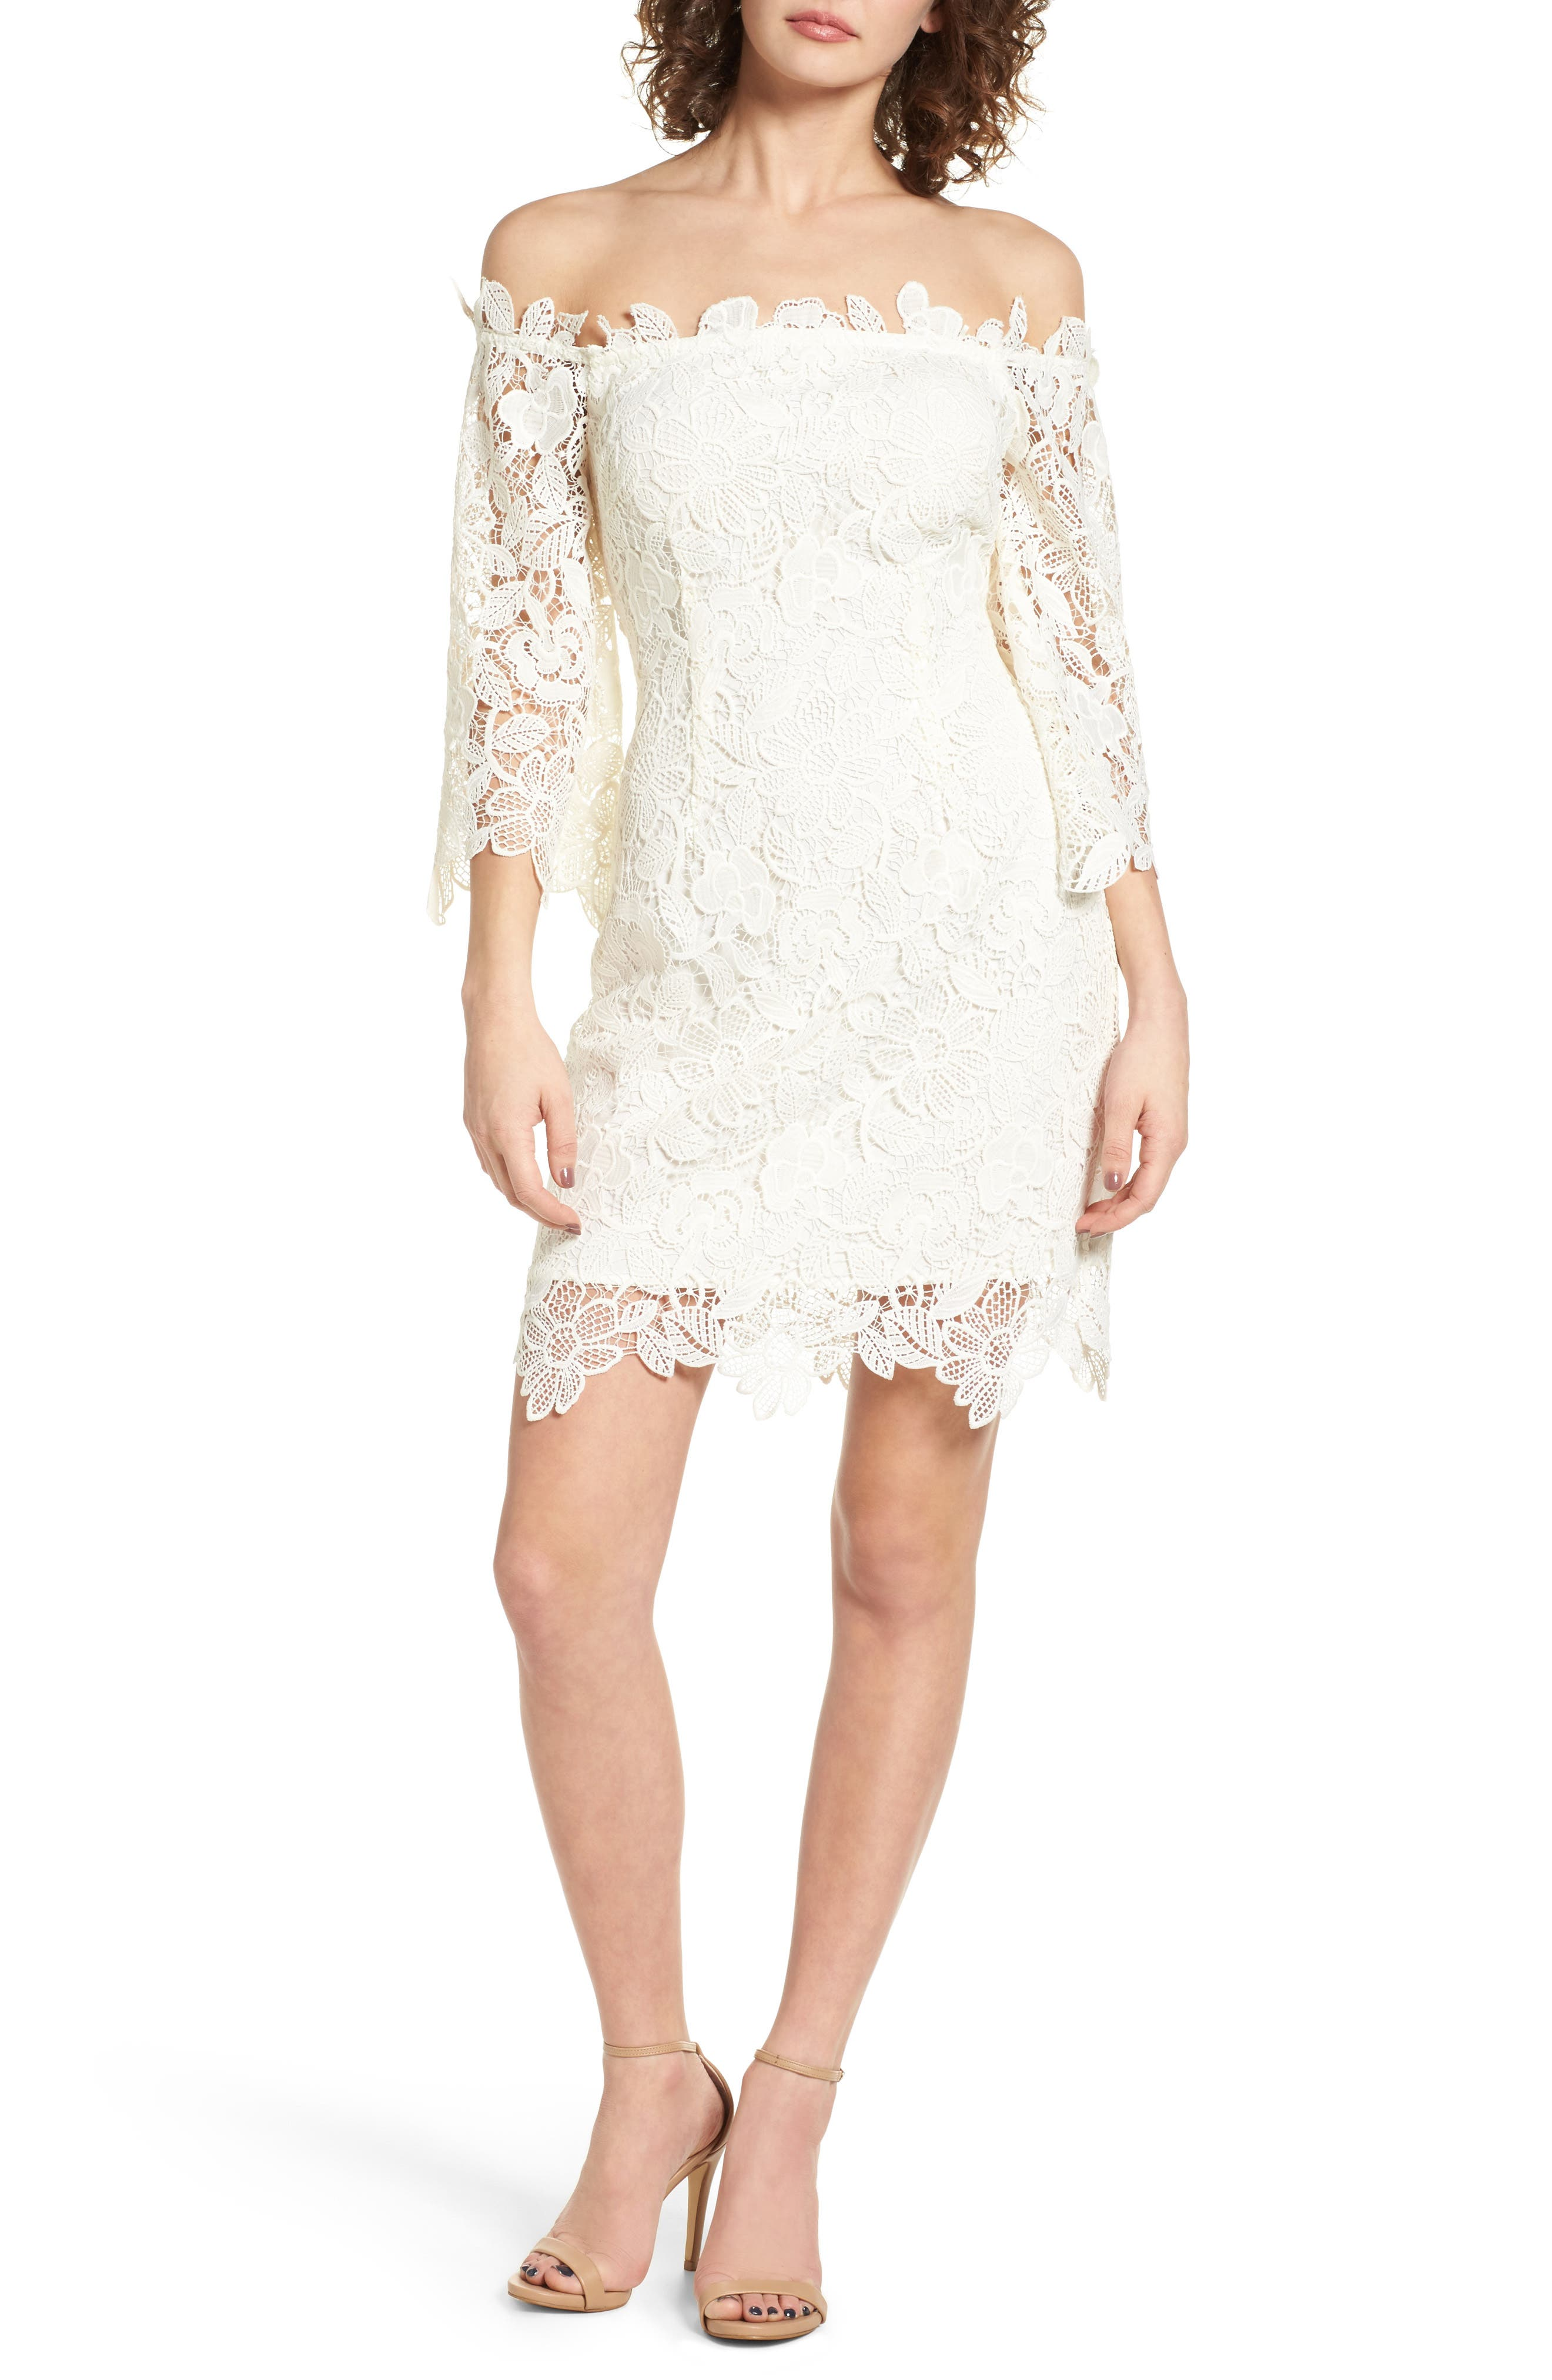 Alternate Image 1 Selected - ASTR the Label Madeline Off the Shoulder Lace Minidress